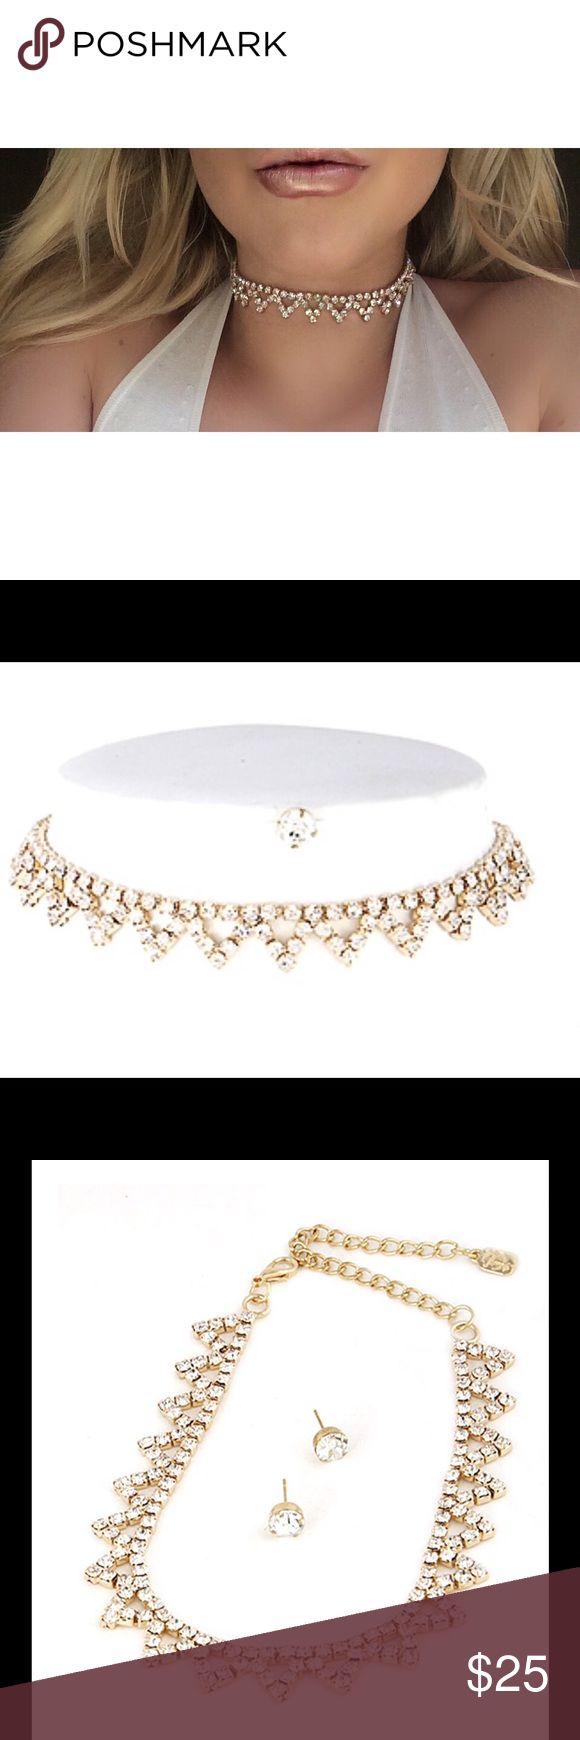 """Princess Choker BNWT Dress to impress with Ms.LadyLike Choker. A choker fit for a Princess, this choker is shiny, complex yet elegant. Choker extends 11""""-17"""" around. SAV Jewelry Necklaces"""